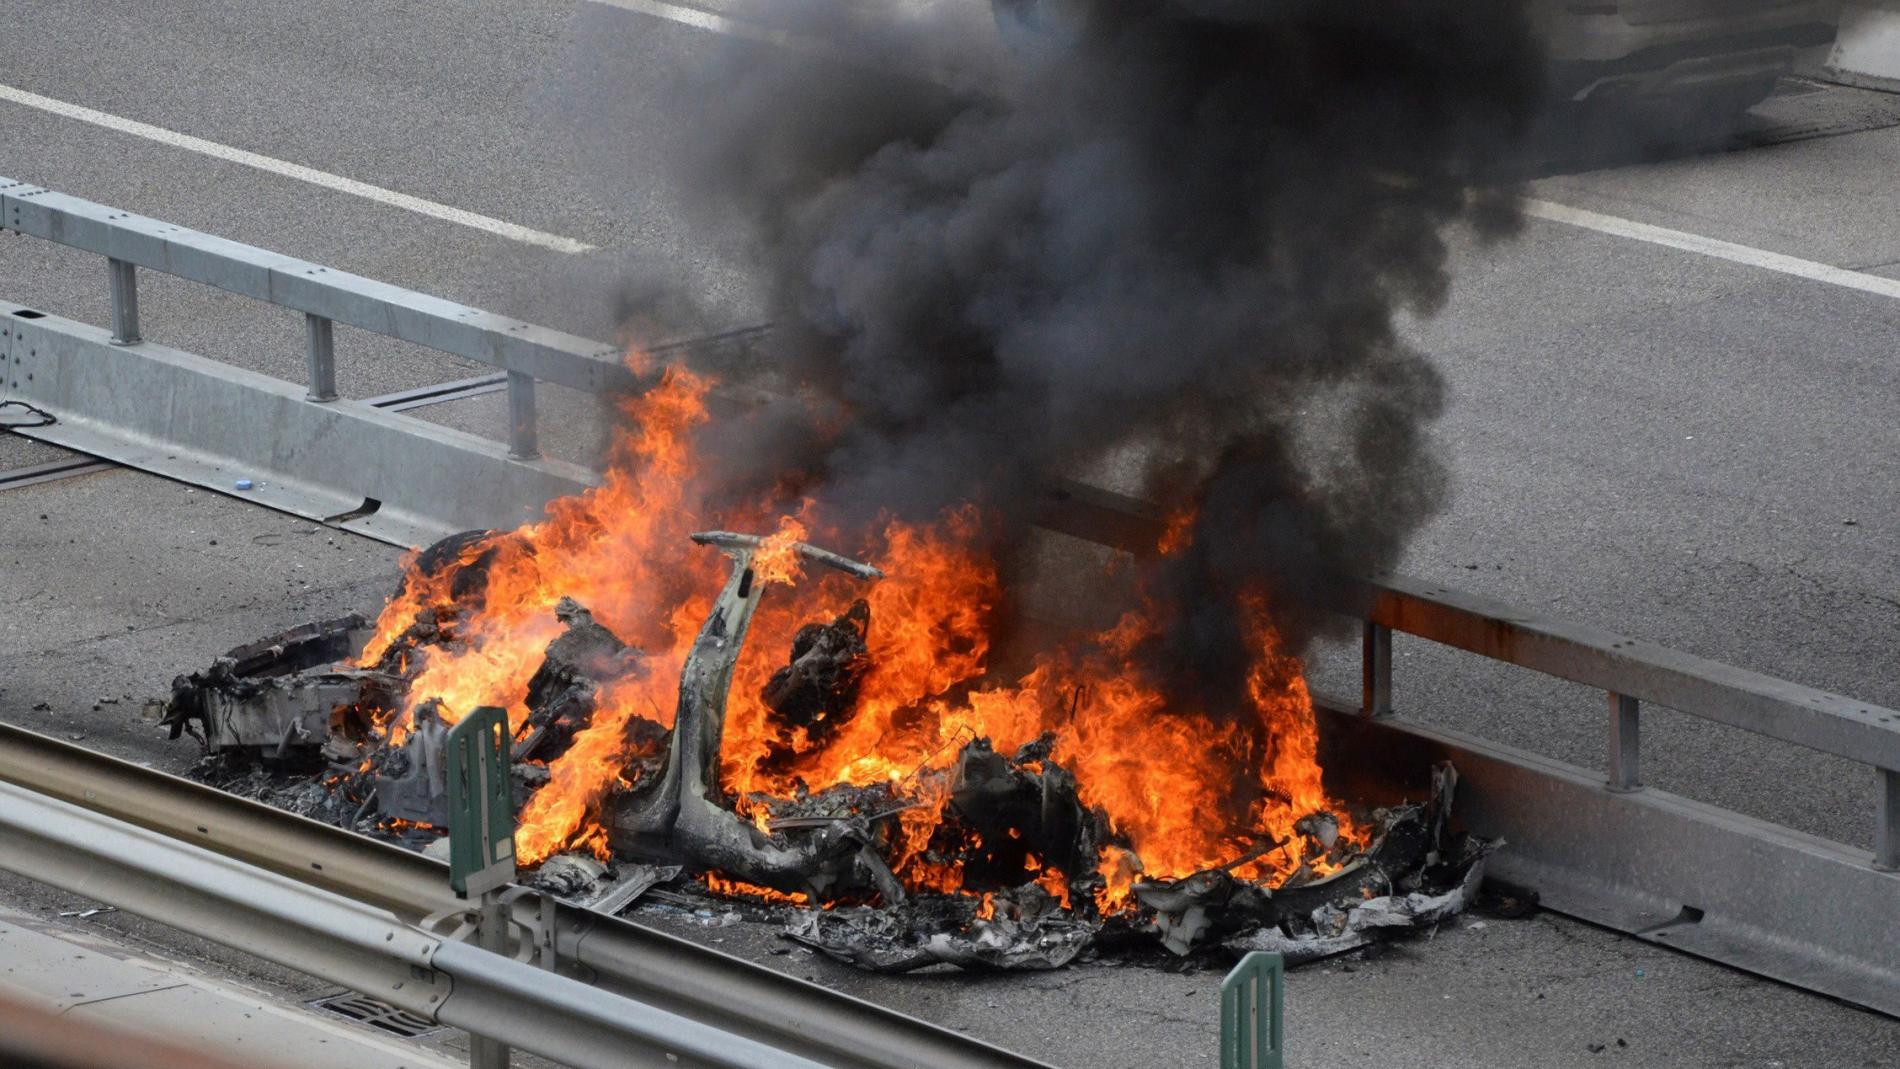 An electric-powered Tesla car burns after a crash on the Swiss A2 motorway on Monte Ceneri near Bellinzona, Switzerland May 10, 2018. Picture taken on May 10, 2018.